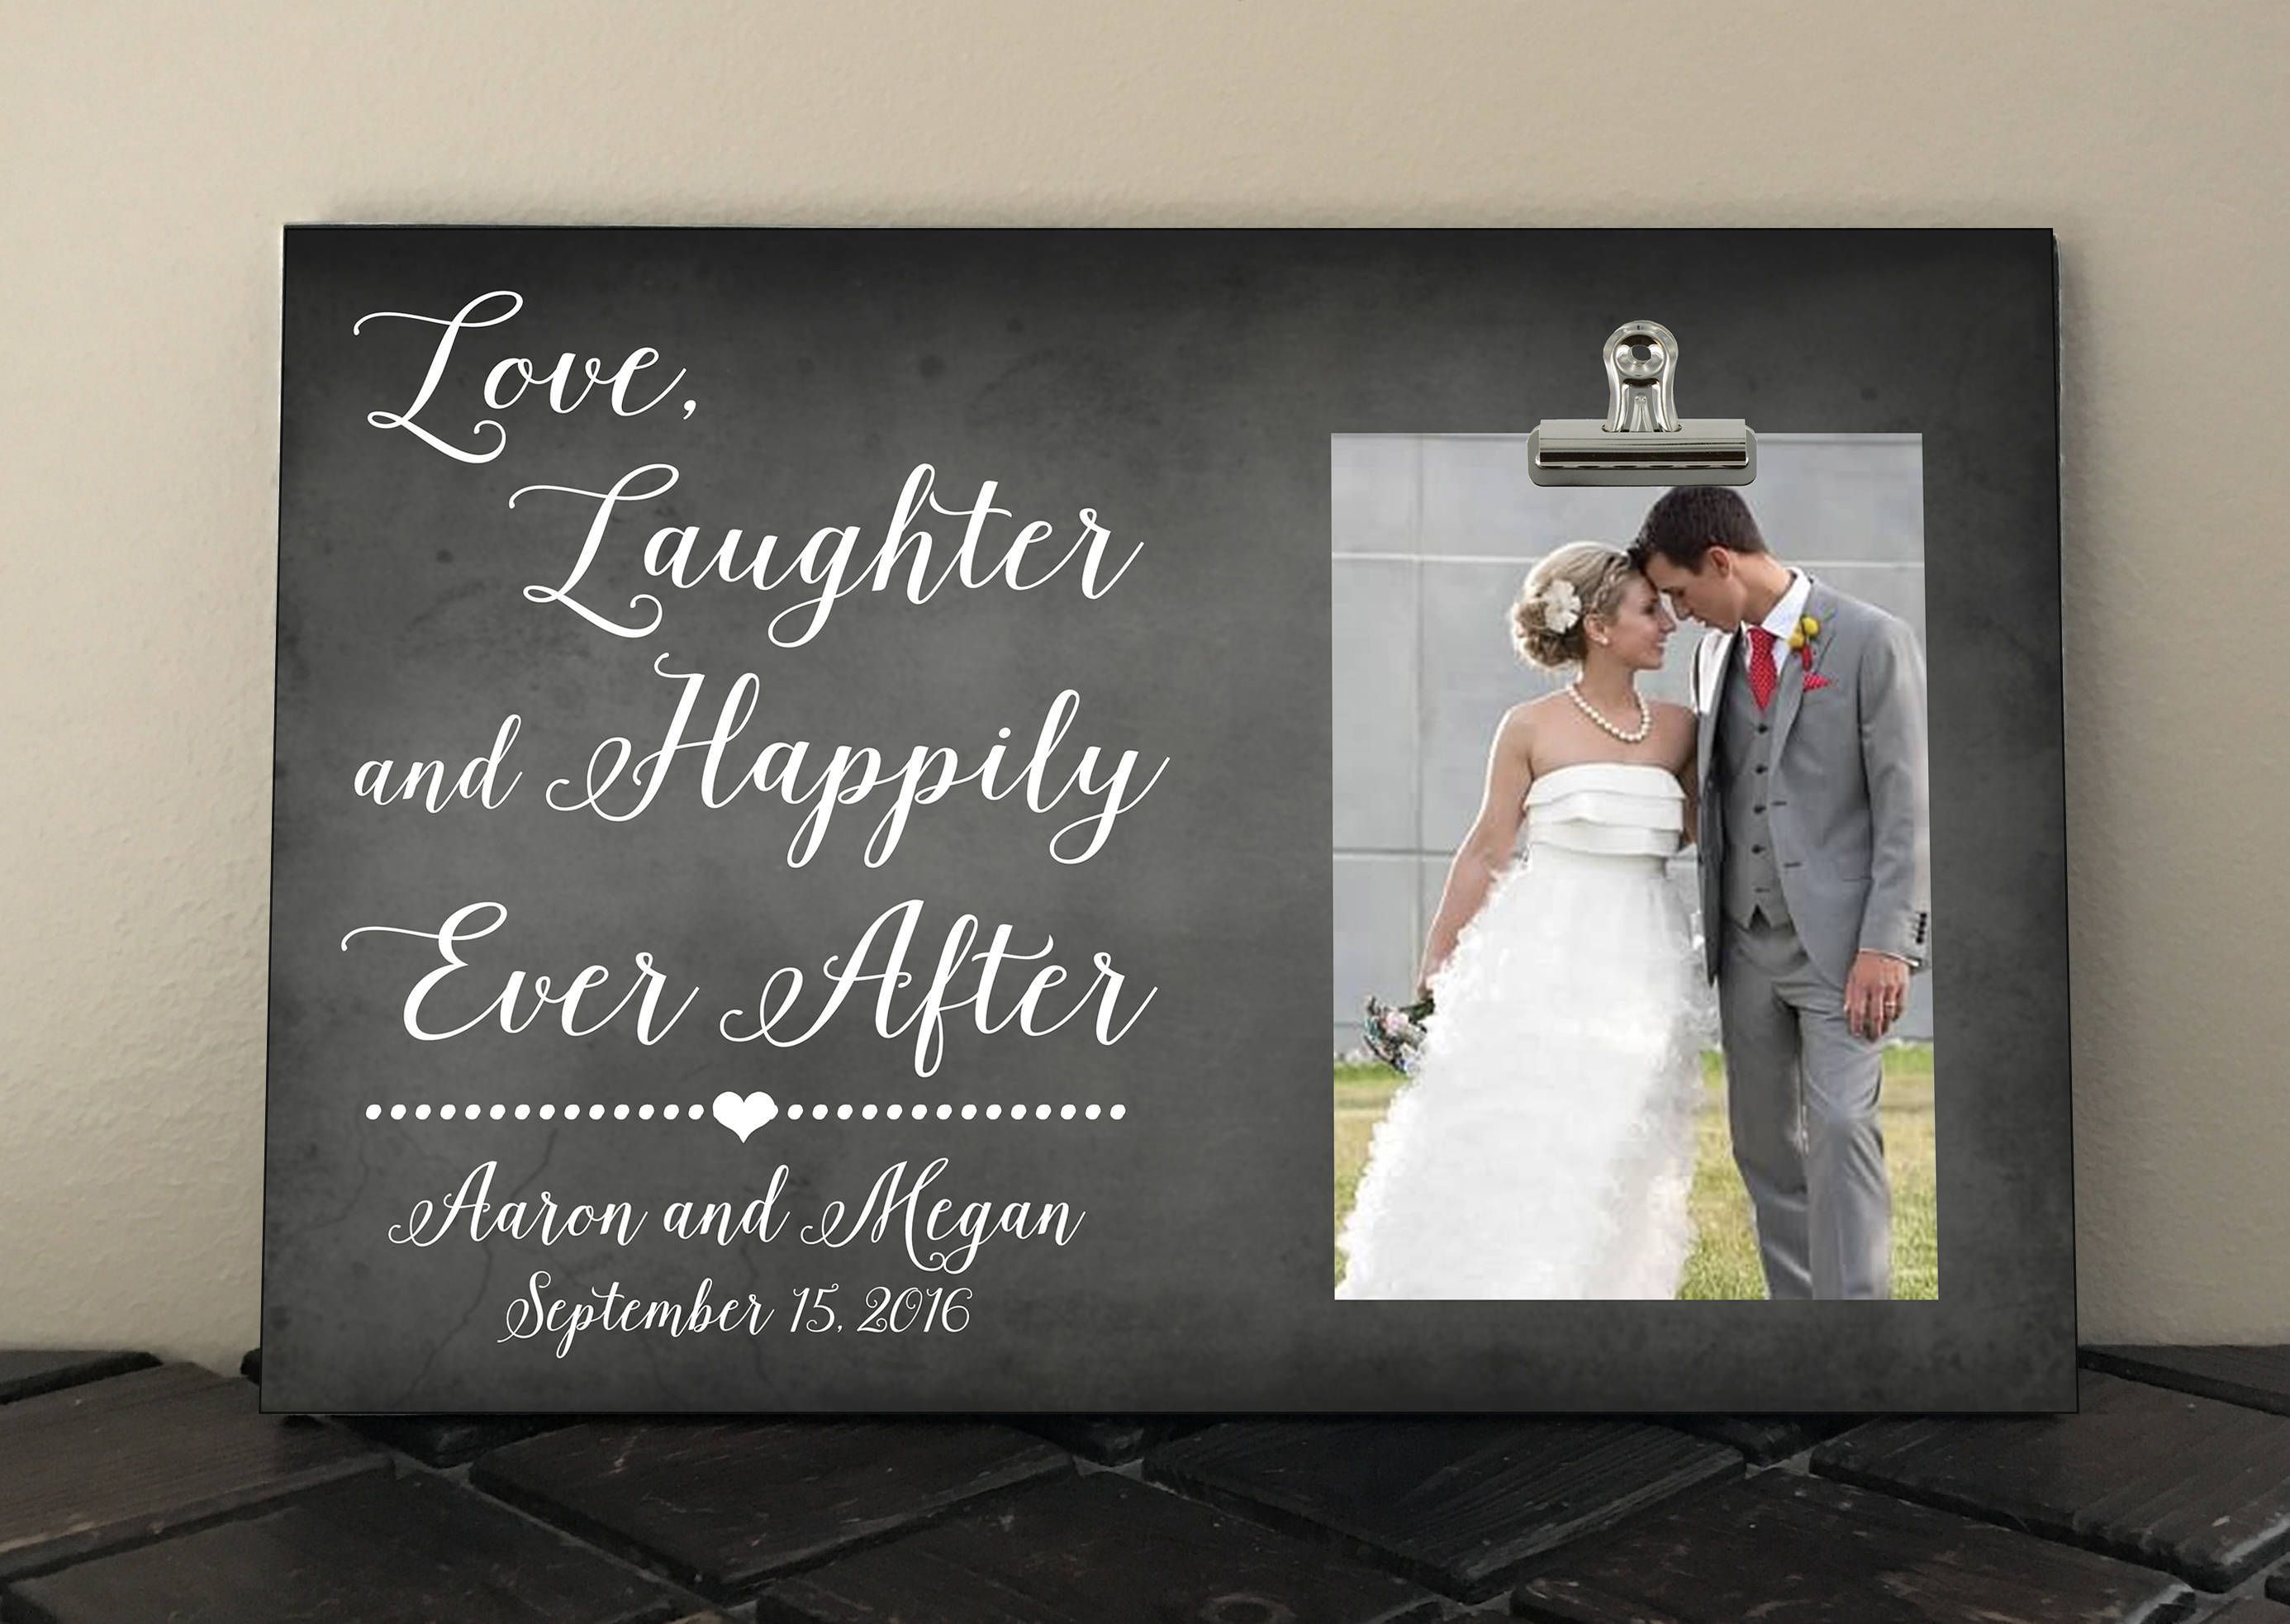 bridal shower themes without gifts%0A Free Design Proof and Personalization  LOVE Laughter and Happily Ever  After  WEDDING or ANNIVERSARY Gift  Bridal Shower Gift  Spouse gift